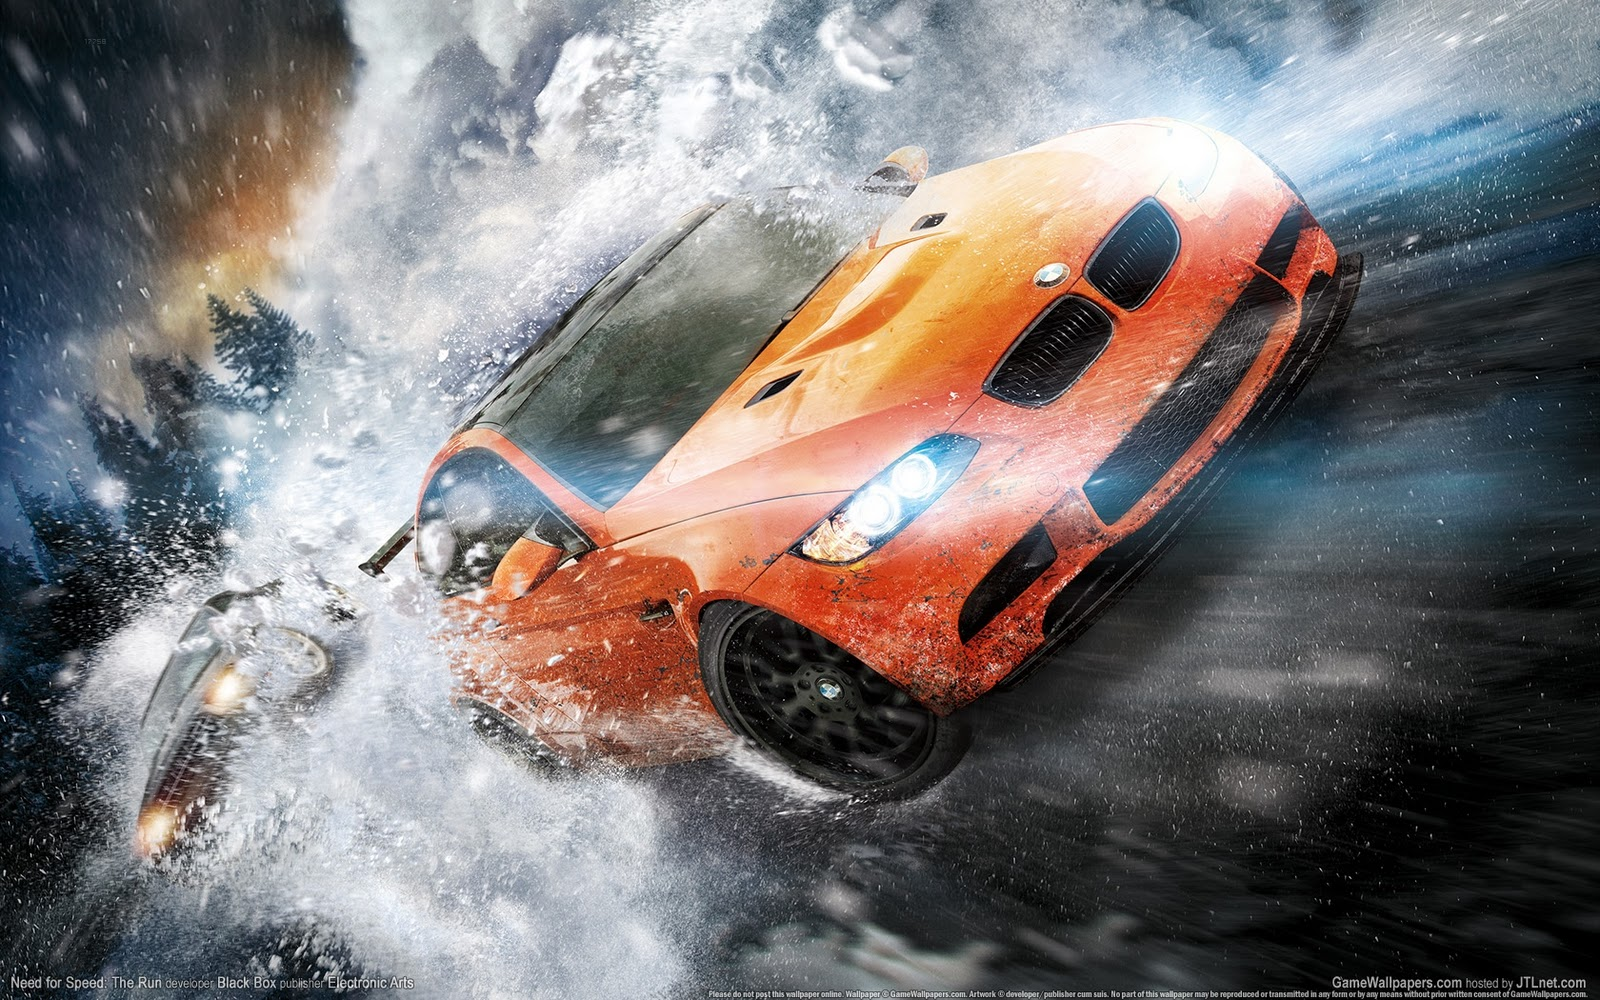 Get out games trailer need for speed the run e wallpapers full hd - Speed wallpaper ...